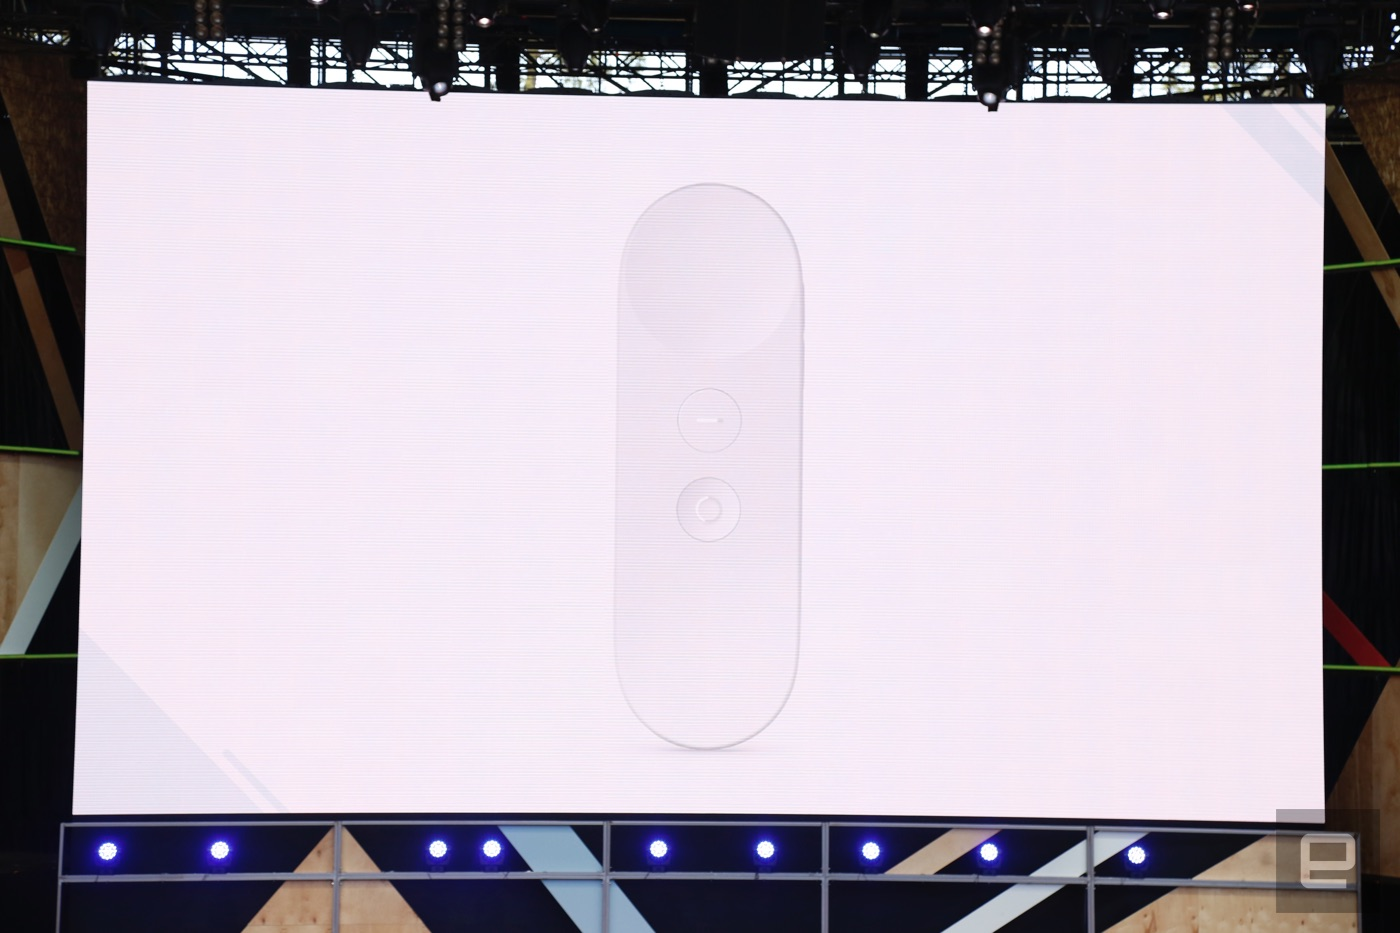 Google's Daydream controller is a Wiimote for VR